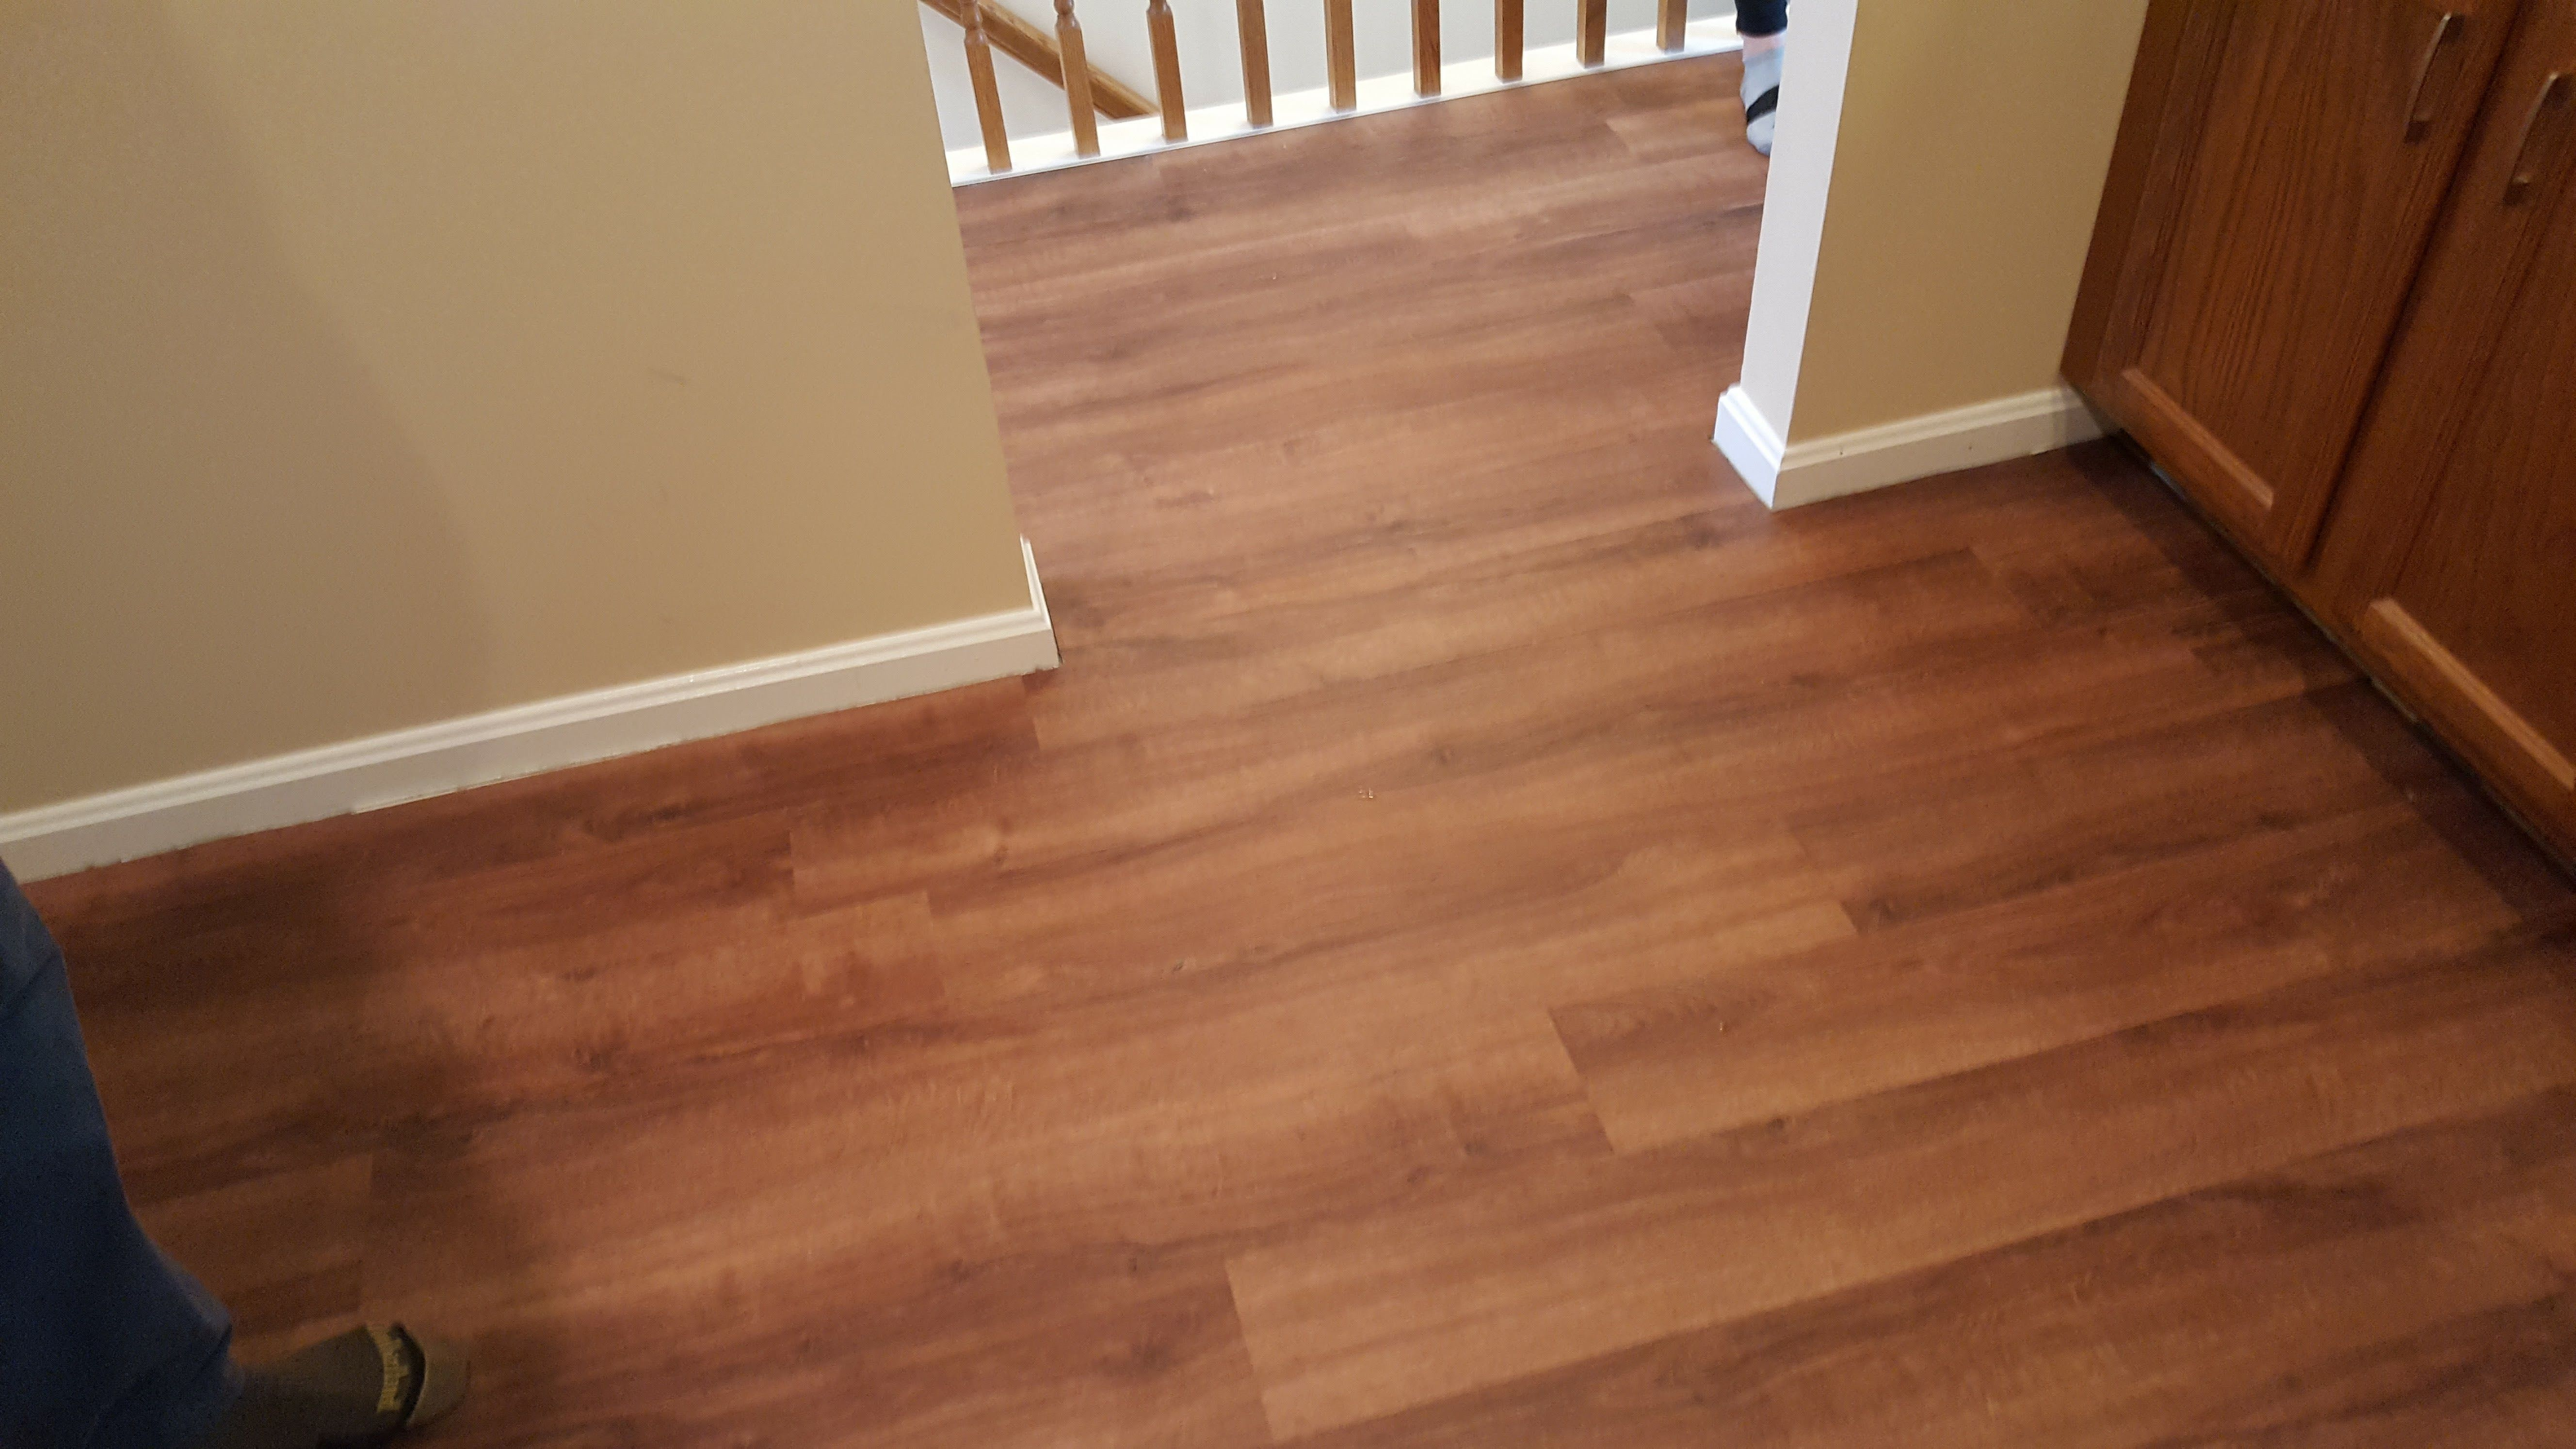 Get These Top Trending Vinyl Plank Flooring Empire To Inspire You With Images Flooring Flooring Cost Flooring Trends